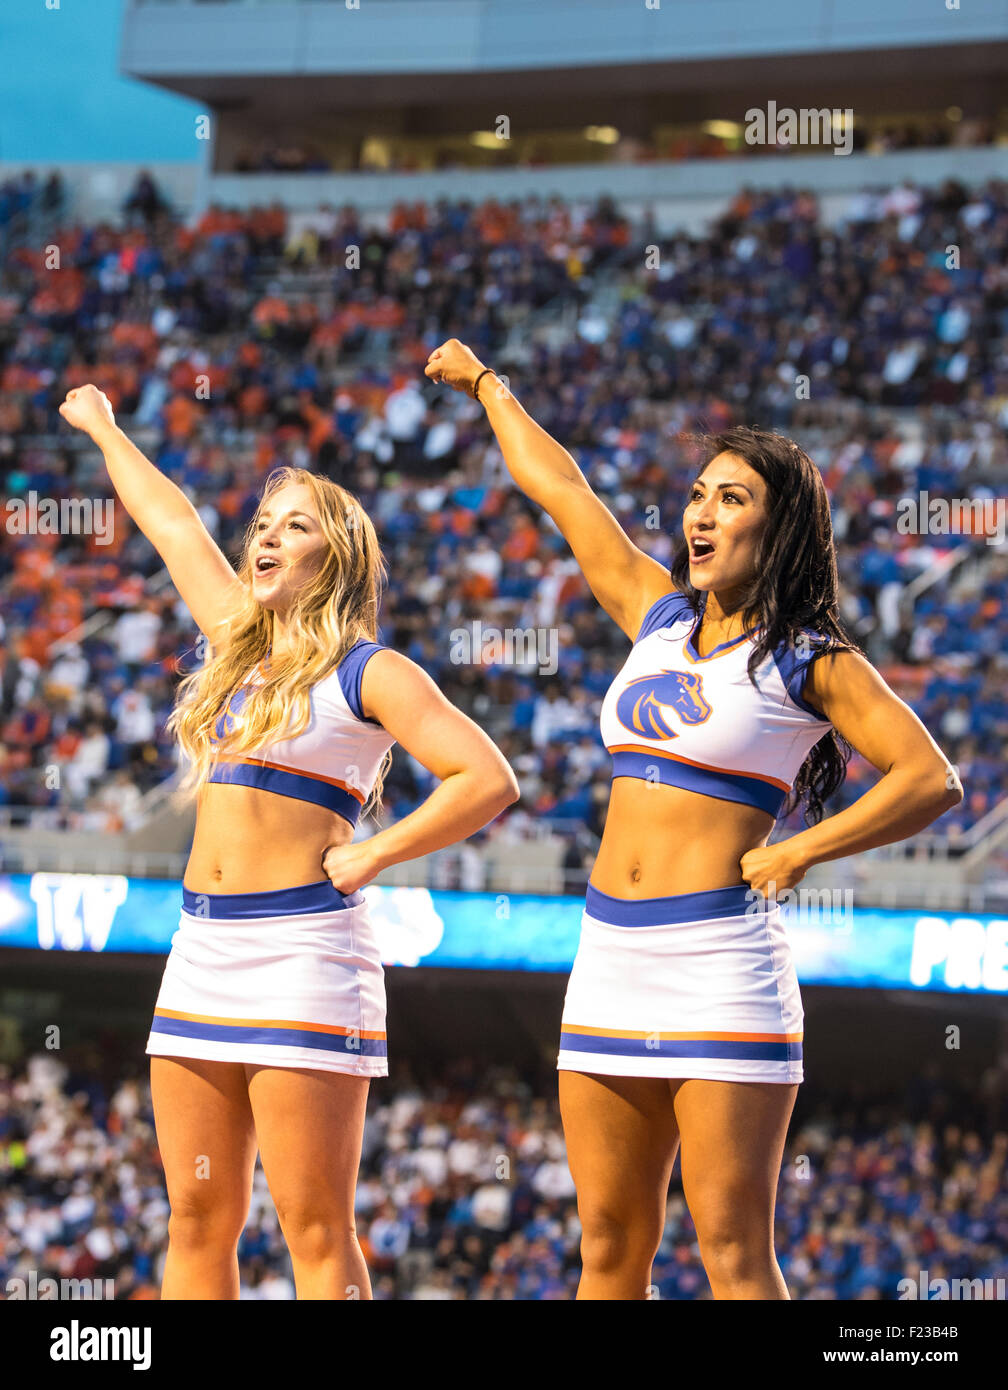 Football,Cheerleaders cheering  on Boise State University Football team against Washington, Boise, Idaho 2015 - Stock Image